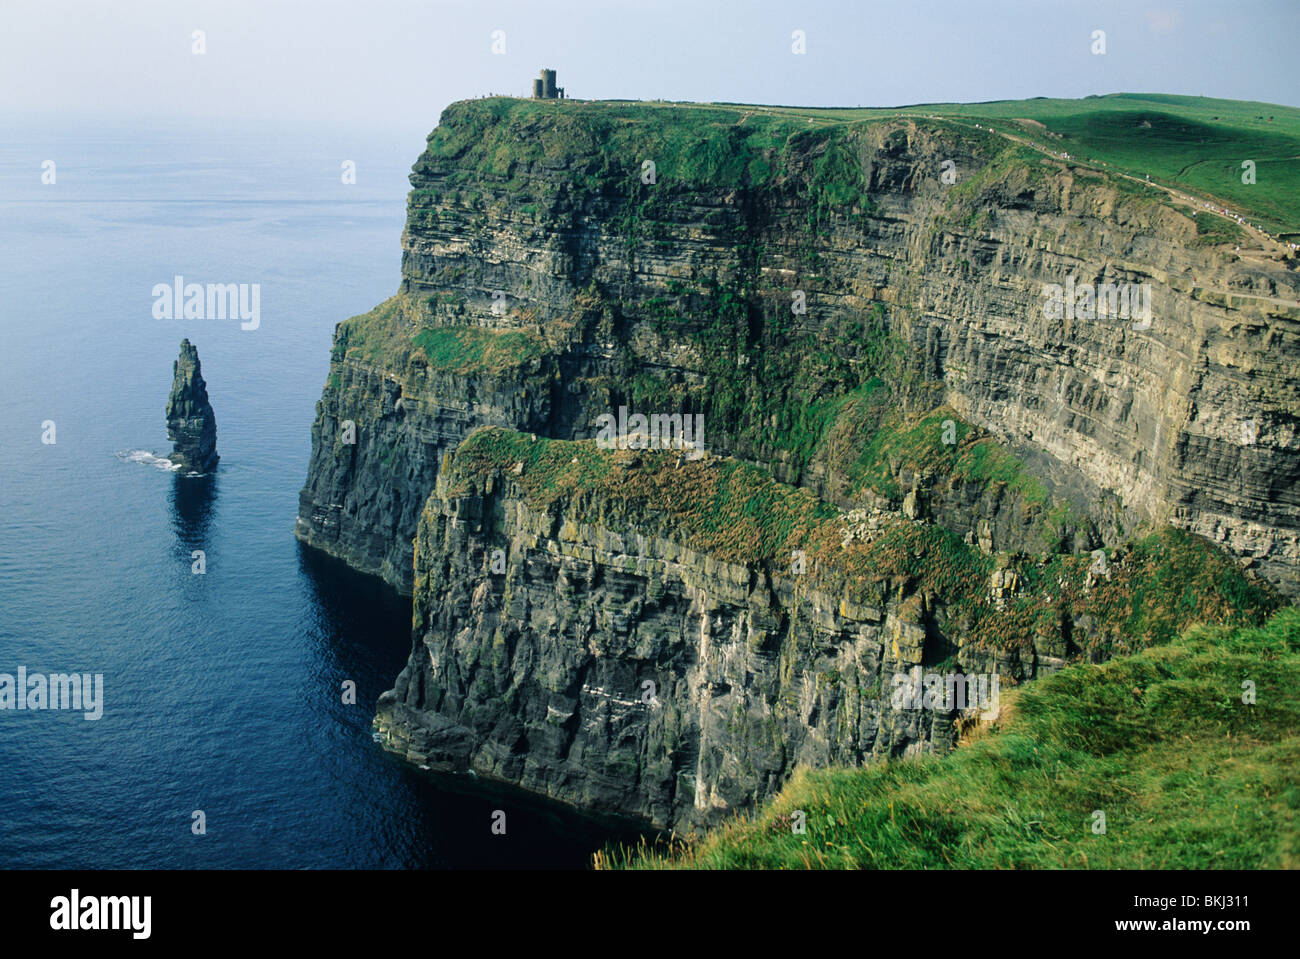 Ireland, County Clare, Cliffs of Moher. - Stock Image